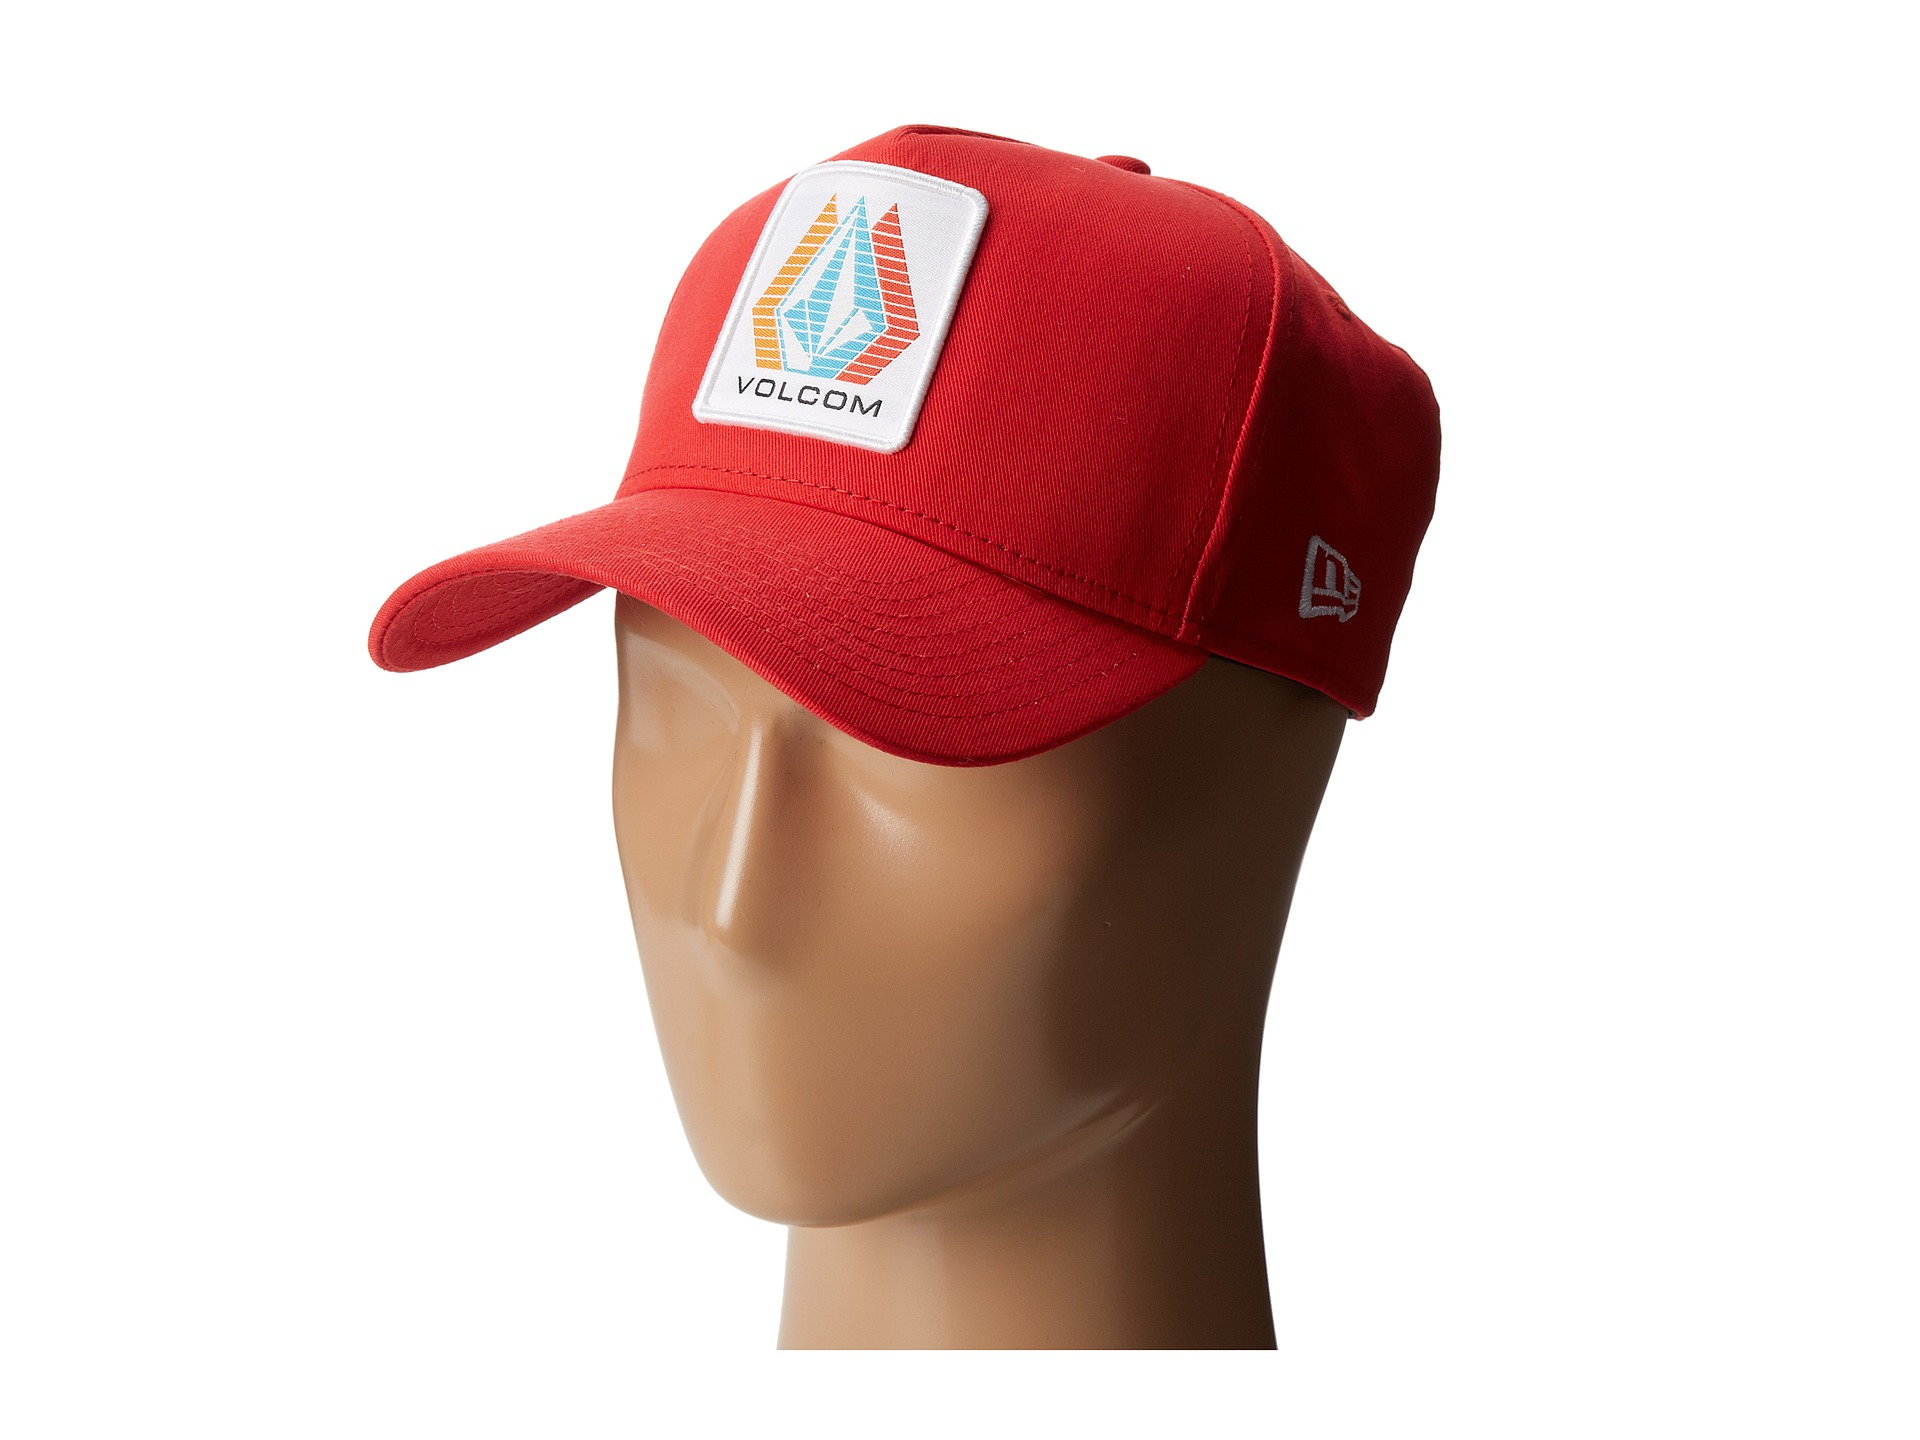 61948da1 ... germany lyst volcom rally 9forty hat in red for men 96cae 3d50a